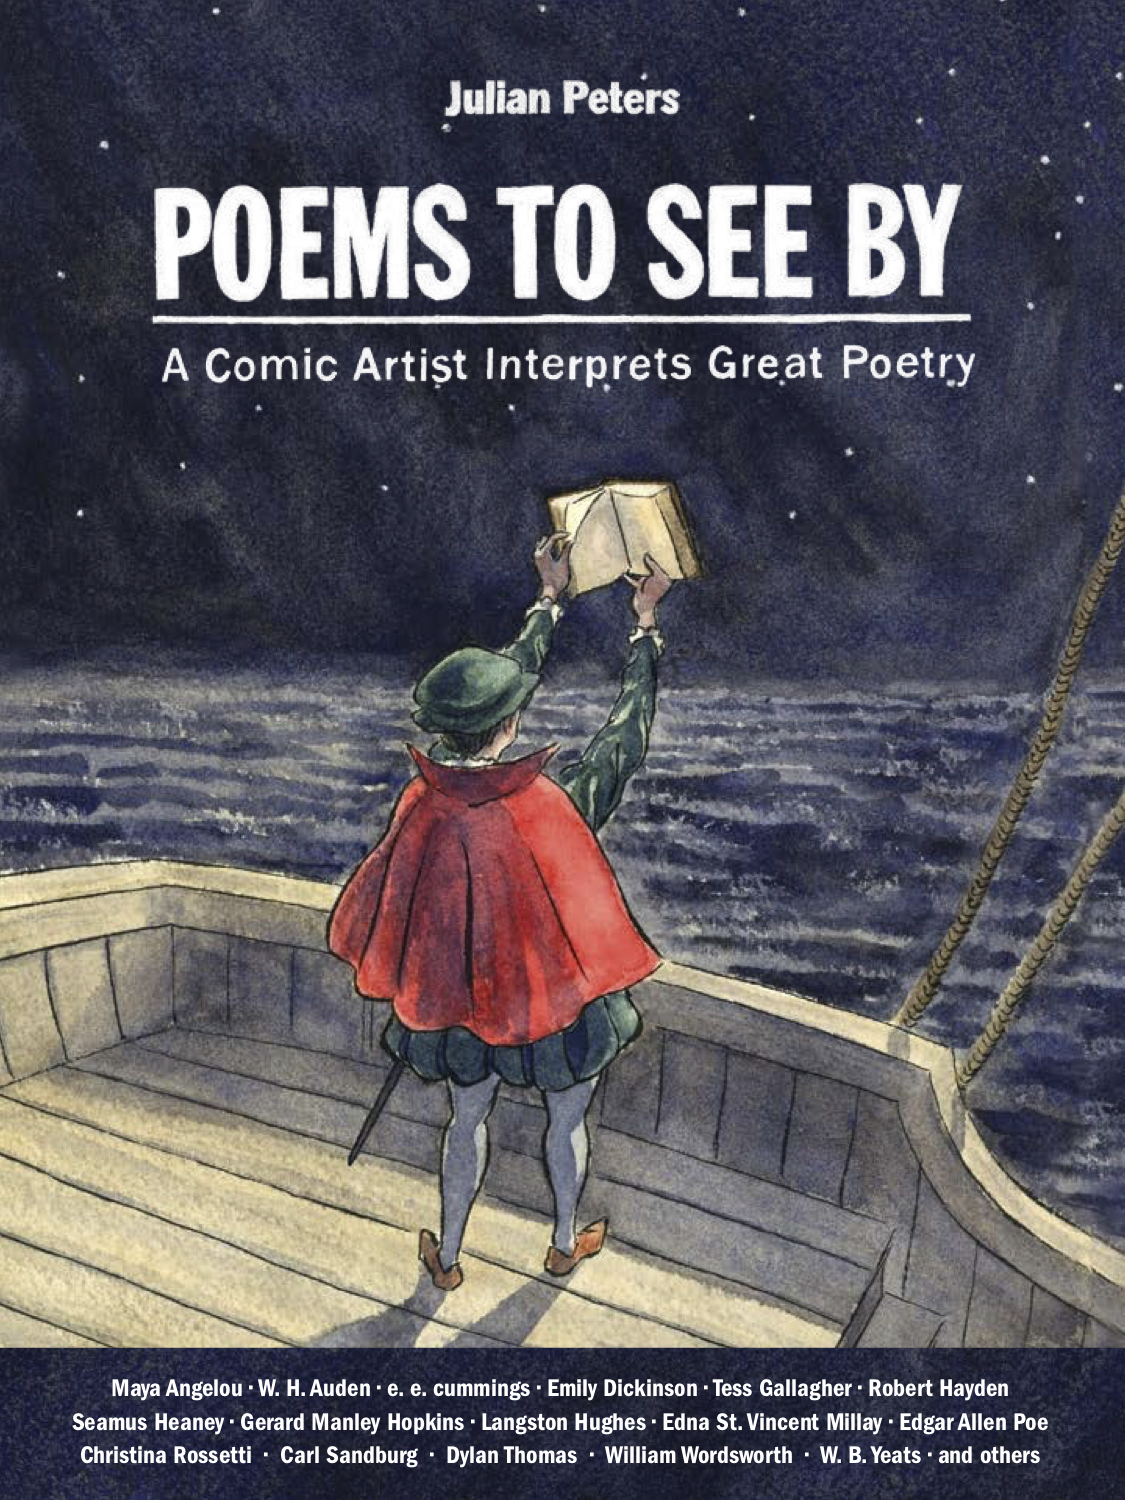 Julian Peters' newest book 'Poems to See By' breathes life into classic poetry